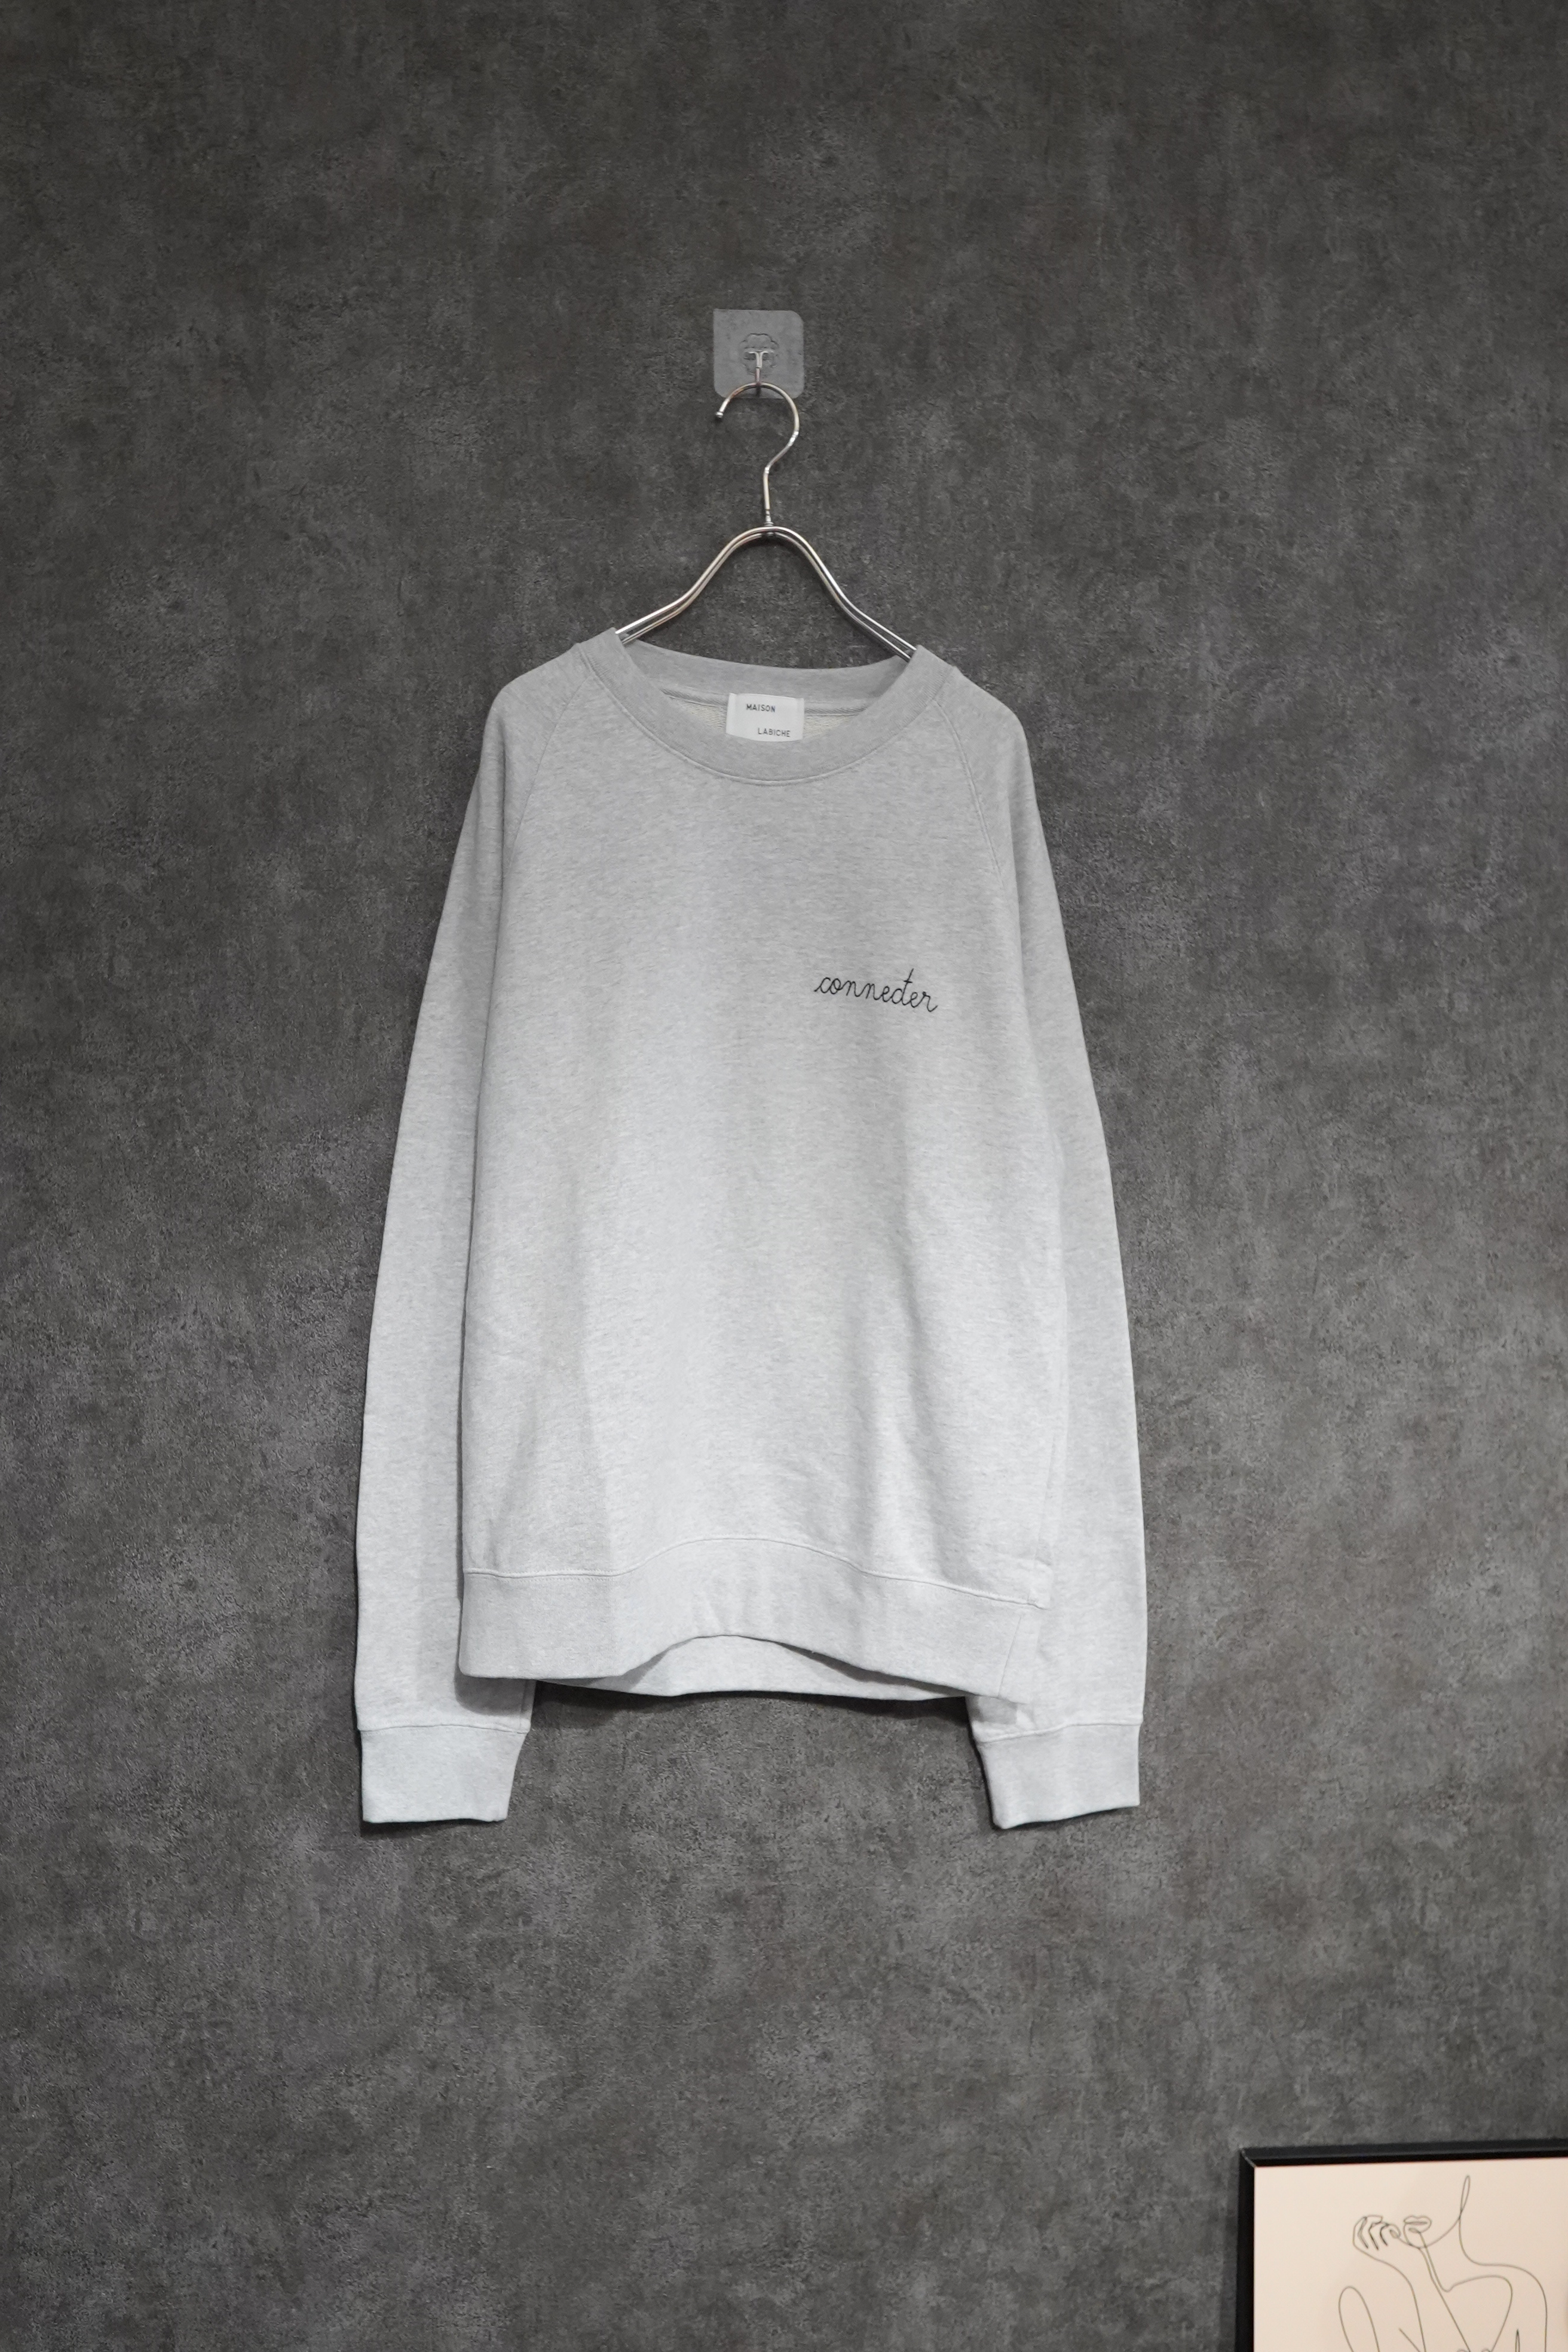 【winter Special price】 MAISON LABICHE  ×Connecter Tokyo Embroidery  sweat by Mister president